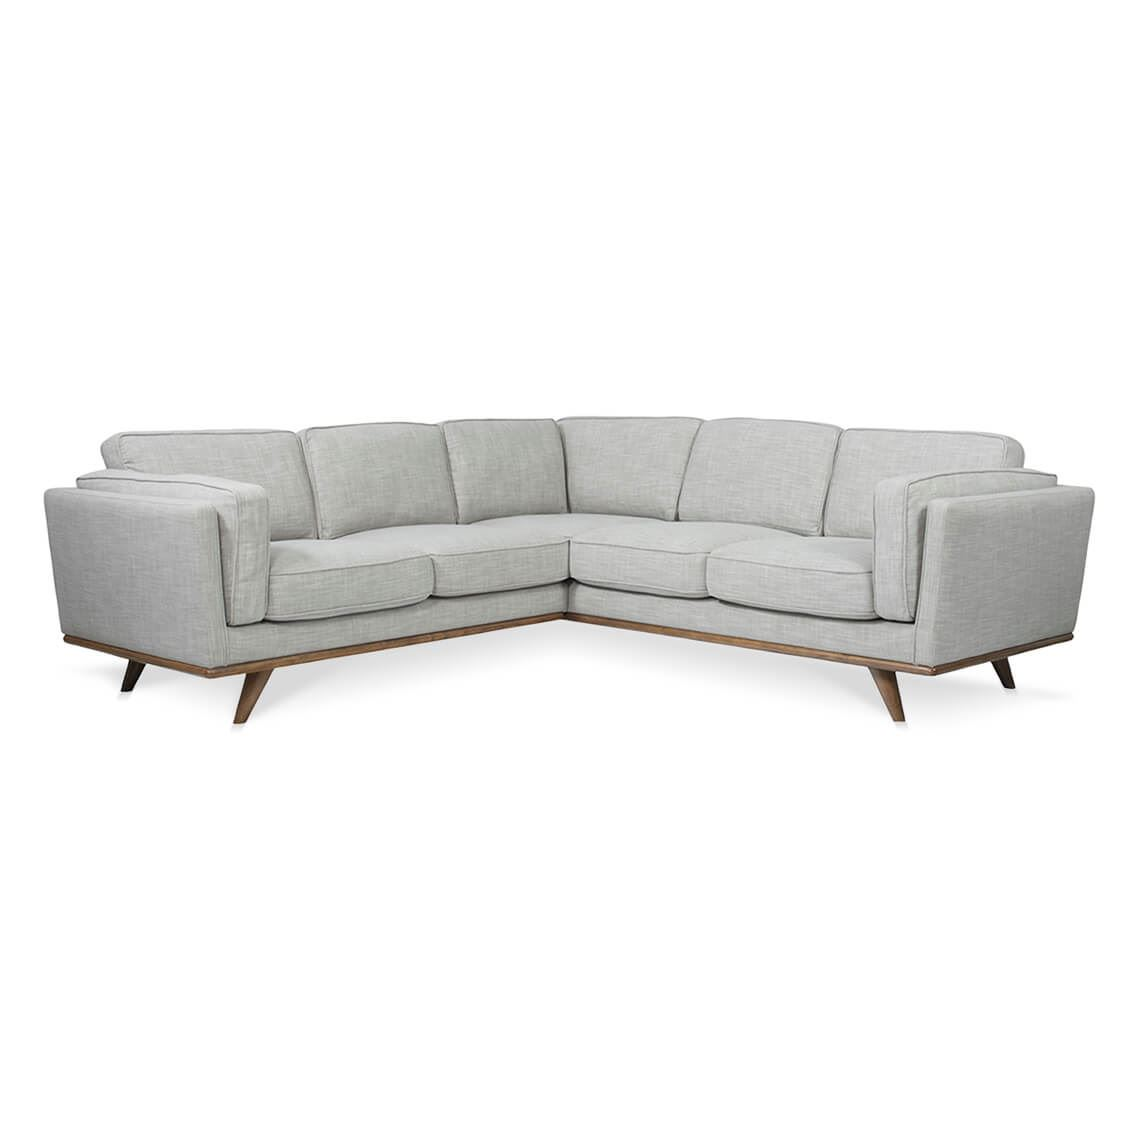 Dahlia 5 Seat Fabric Corner Modular Sofa Size W 243cm x D 237cm x H 82cm in Shell 90% Polyester/10% Linen/Woven Freedom by Freedom, a Sofas for sale on Style Sourcebook